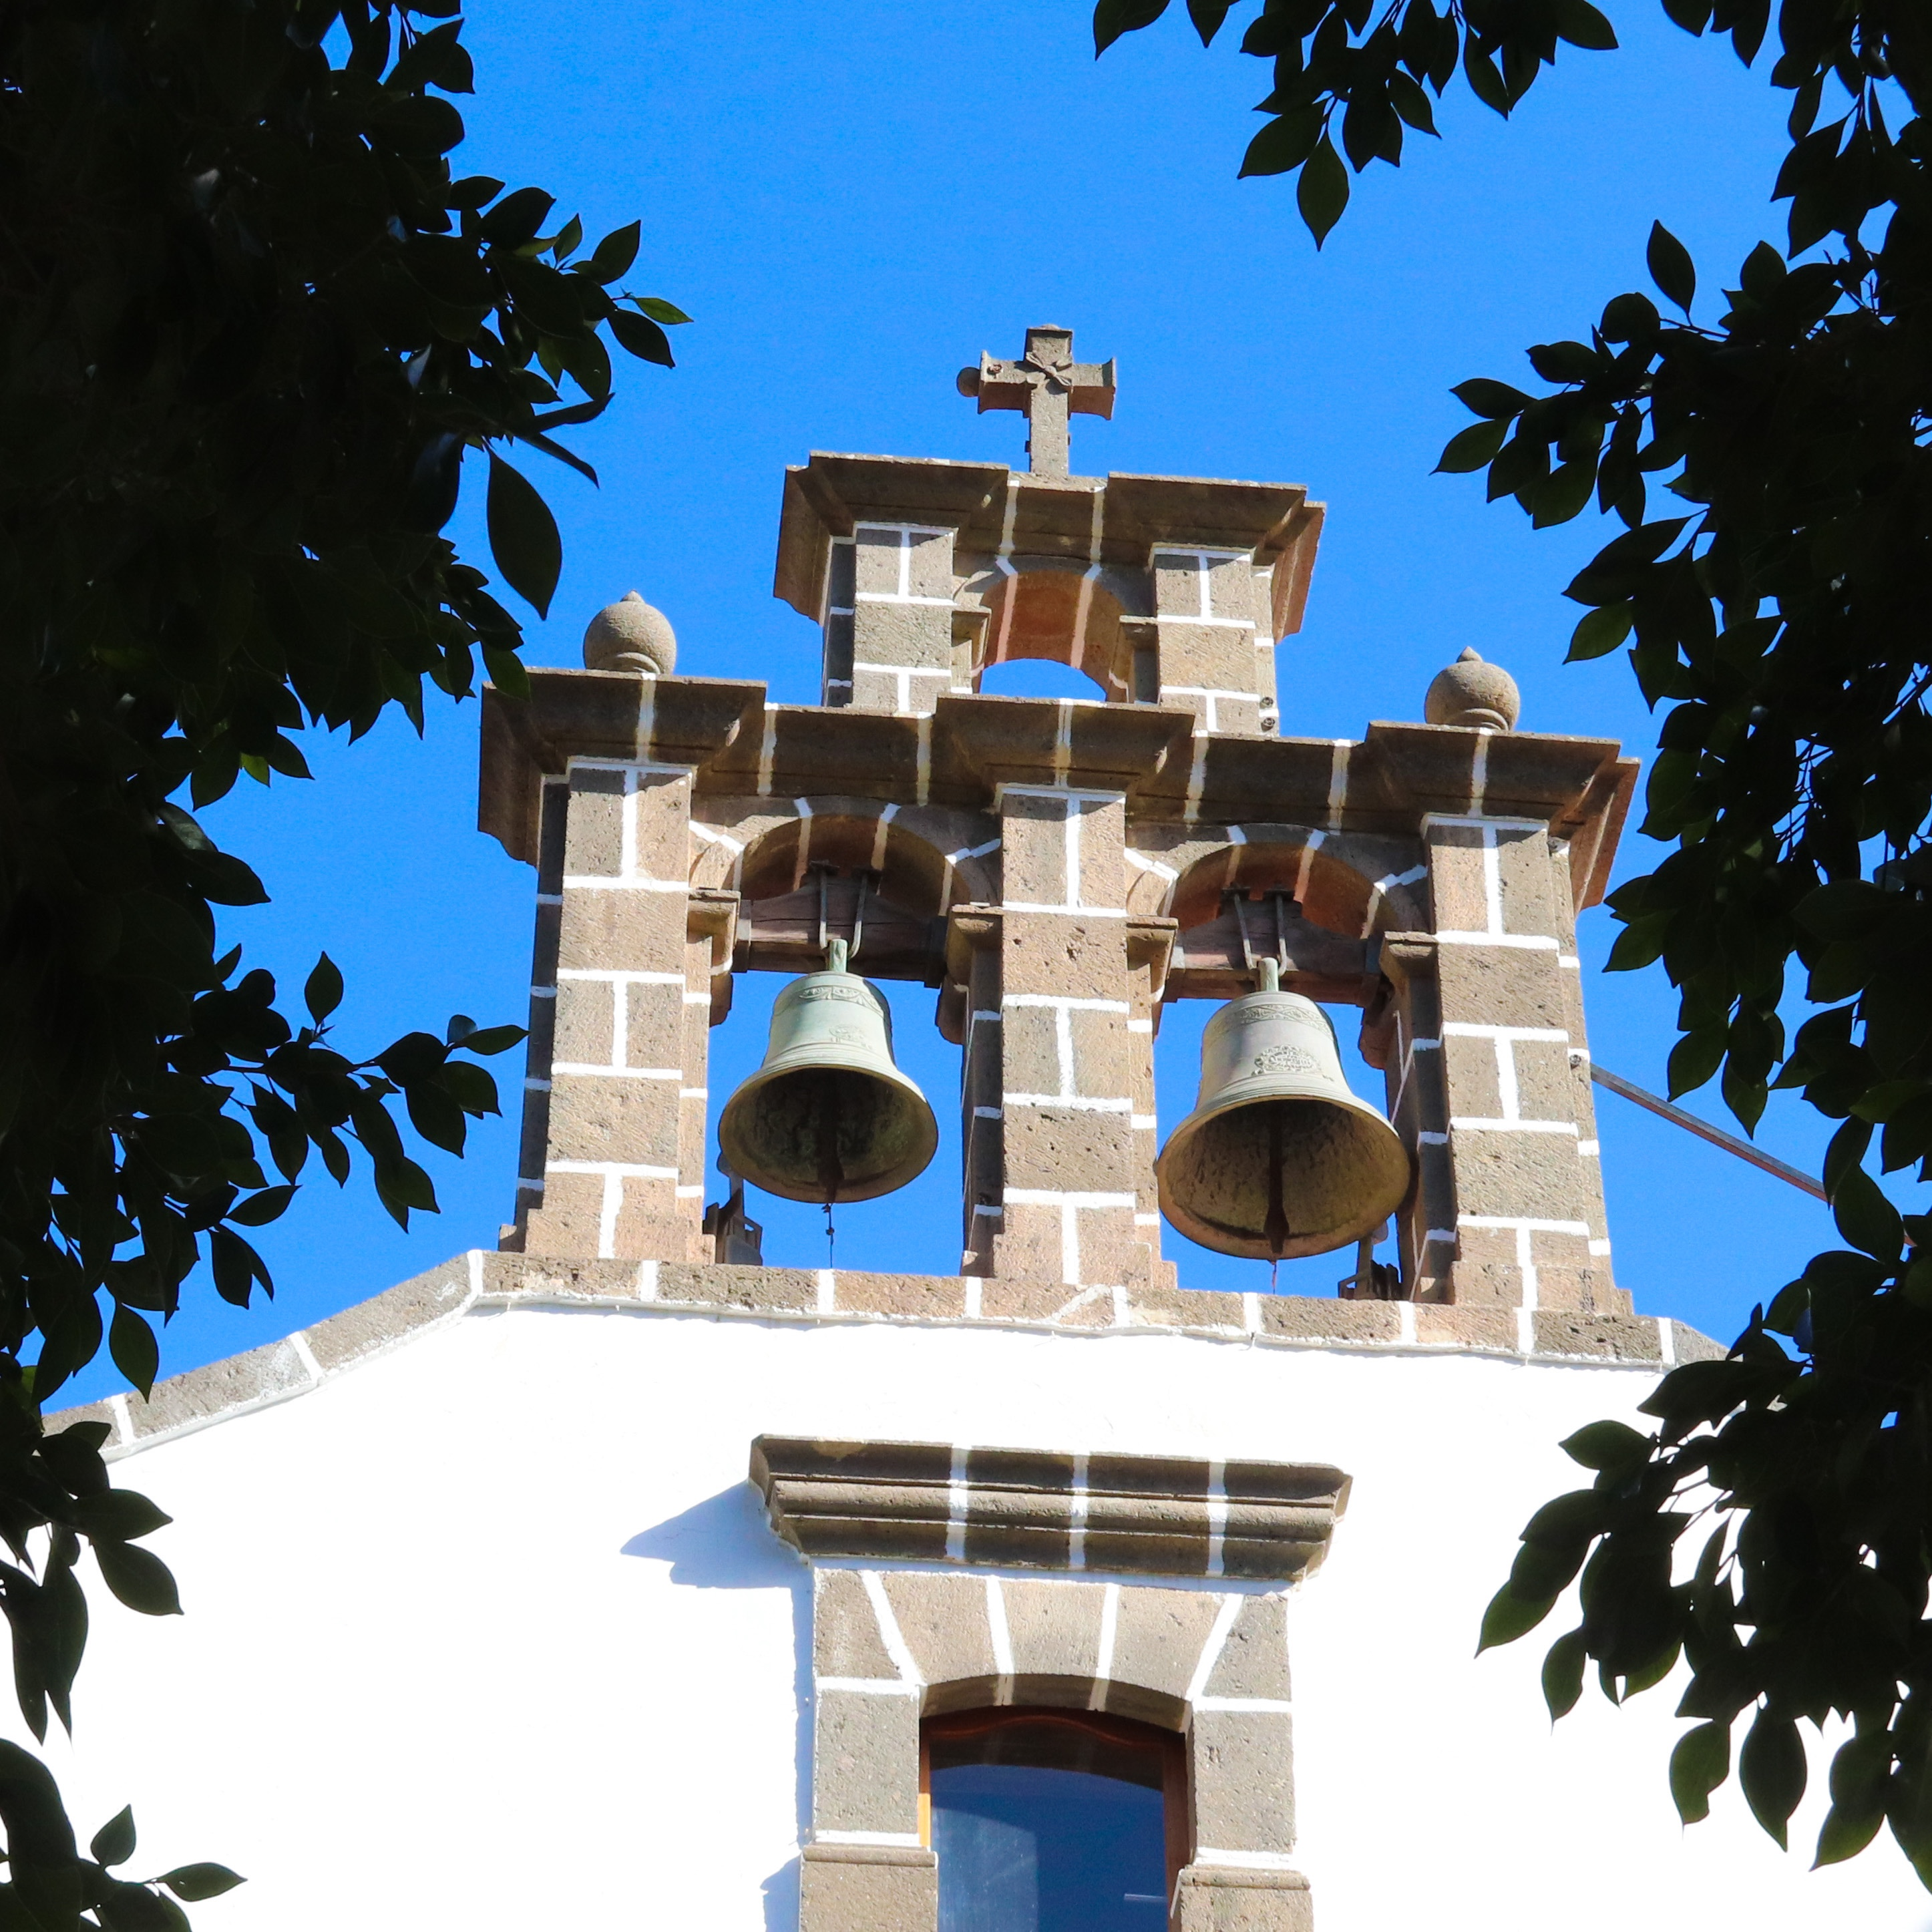 An open belfry of a the little white church in the village of Mogan in Gran Canaria.